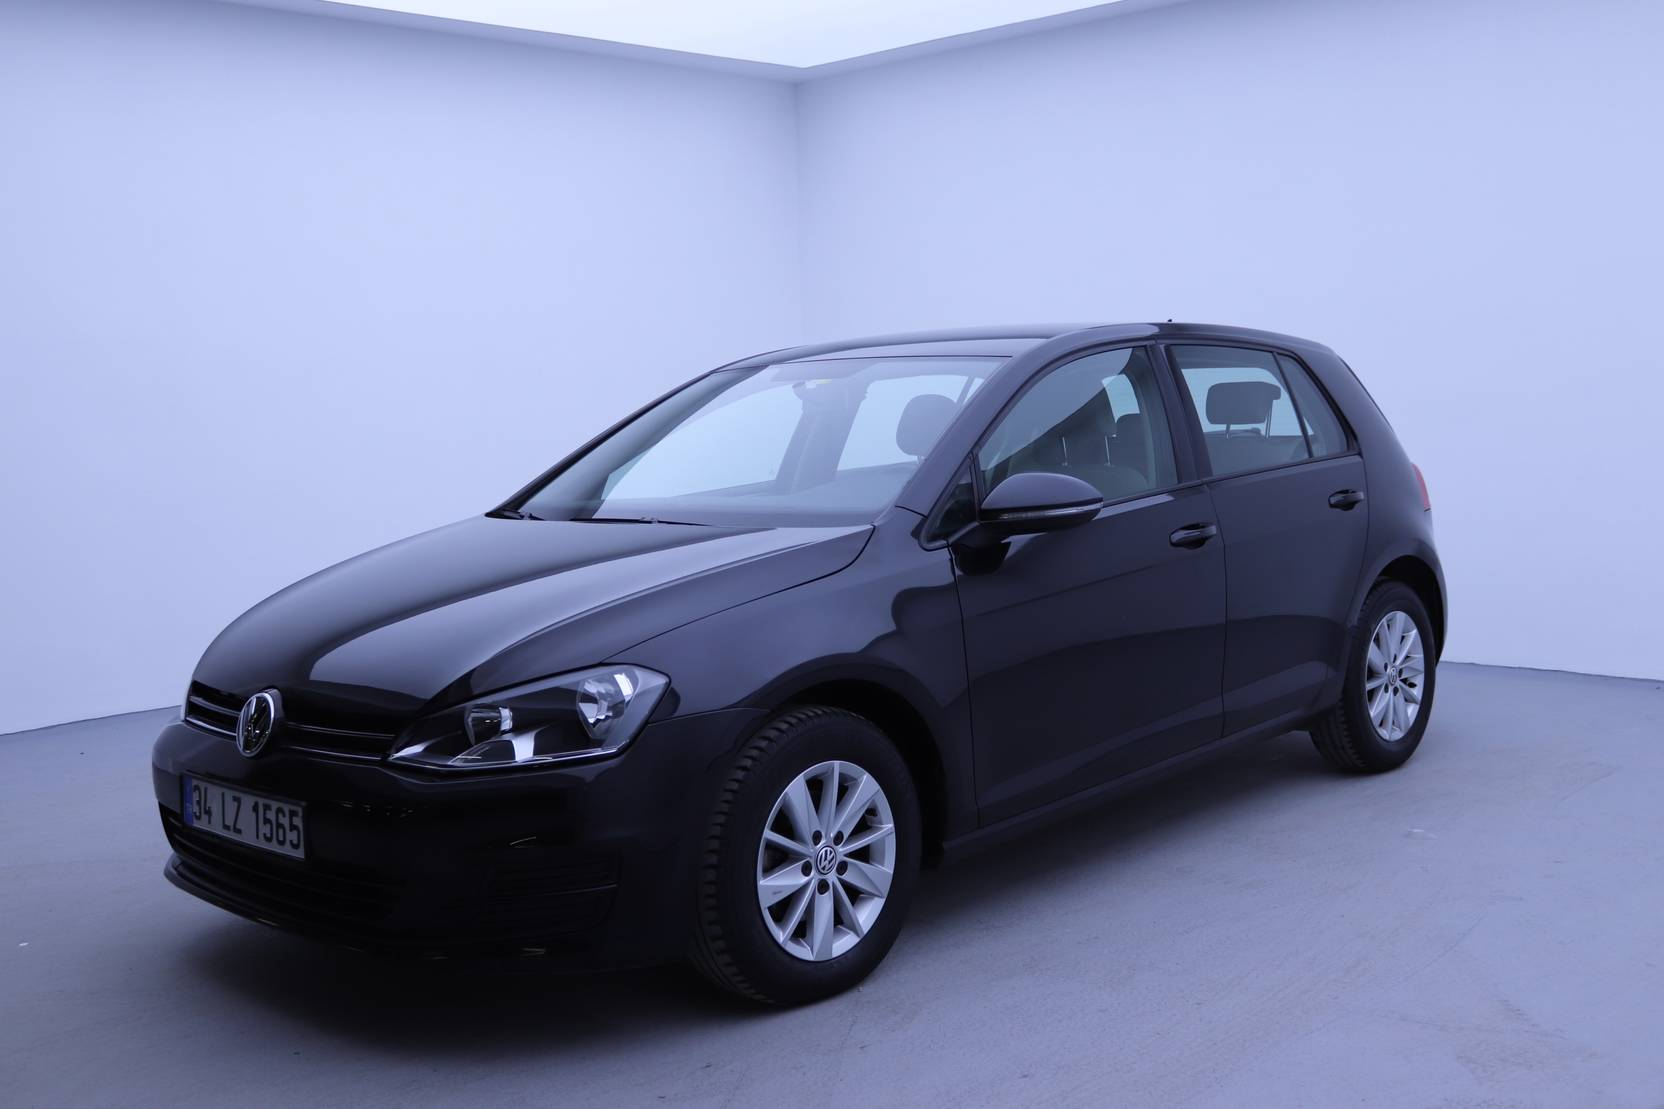 Volkswagen Golf 1.6 TDI (BlueMotion Technology), Midline Plus detail1